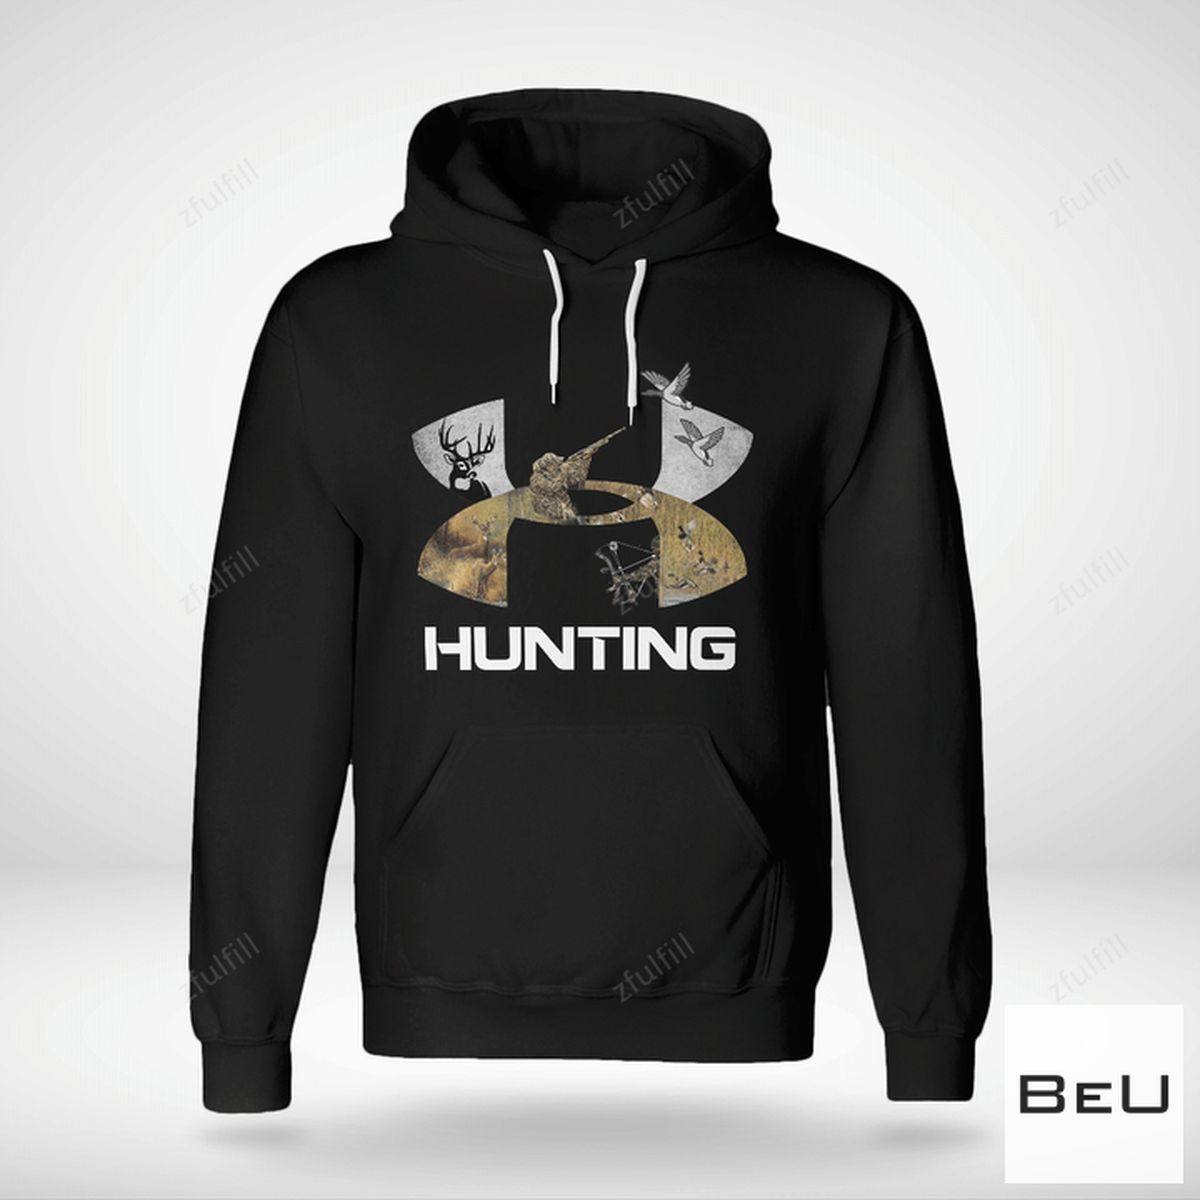 Hot Under Armour Hunting shirt